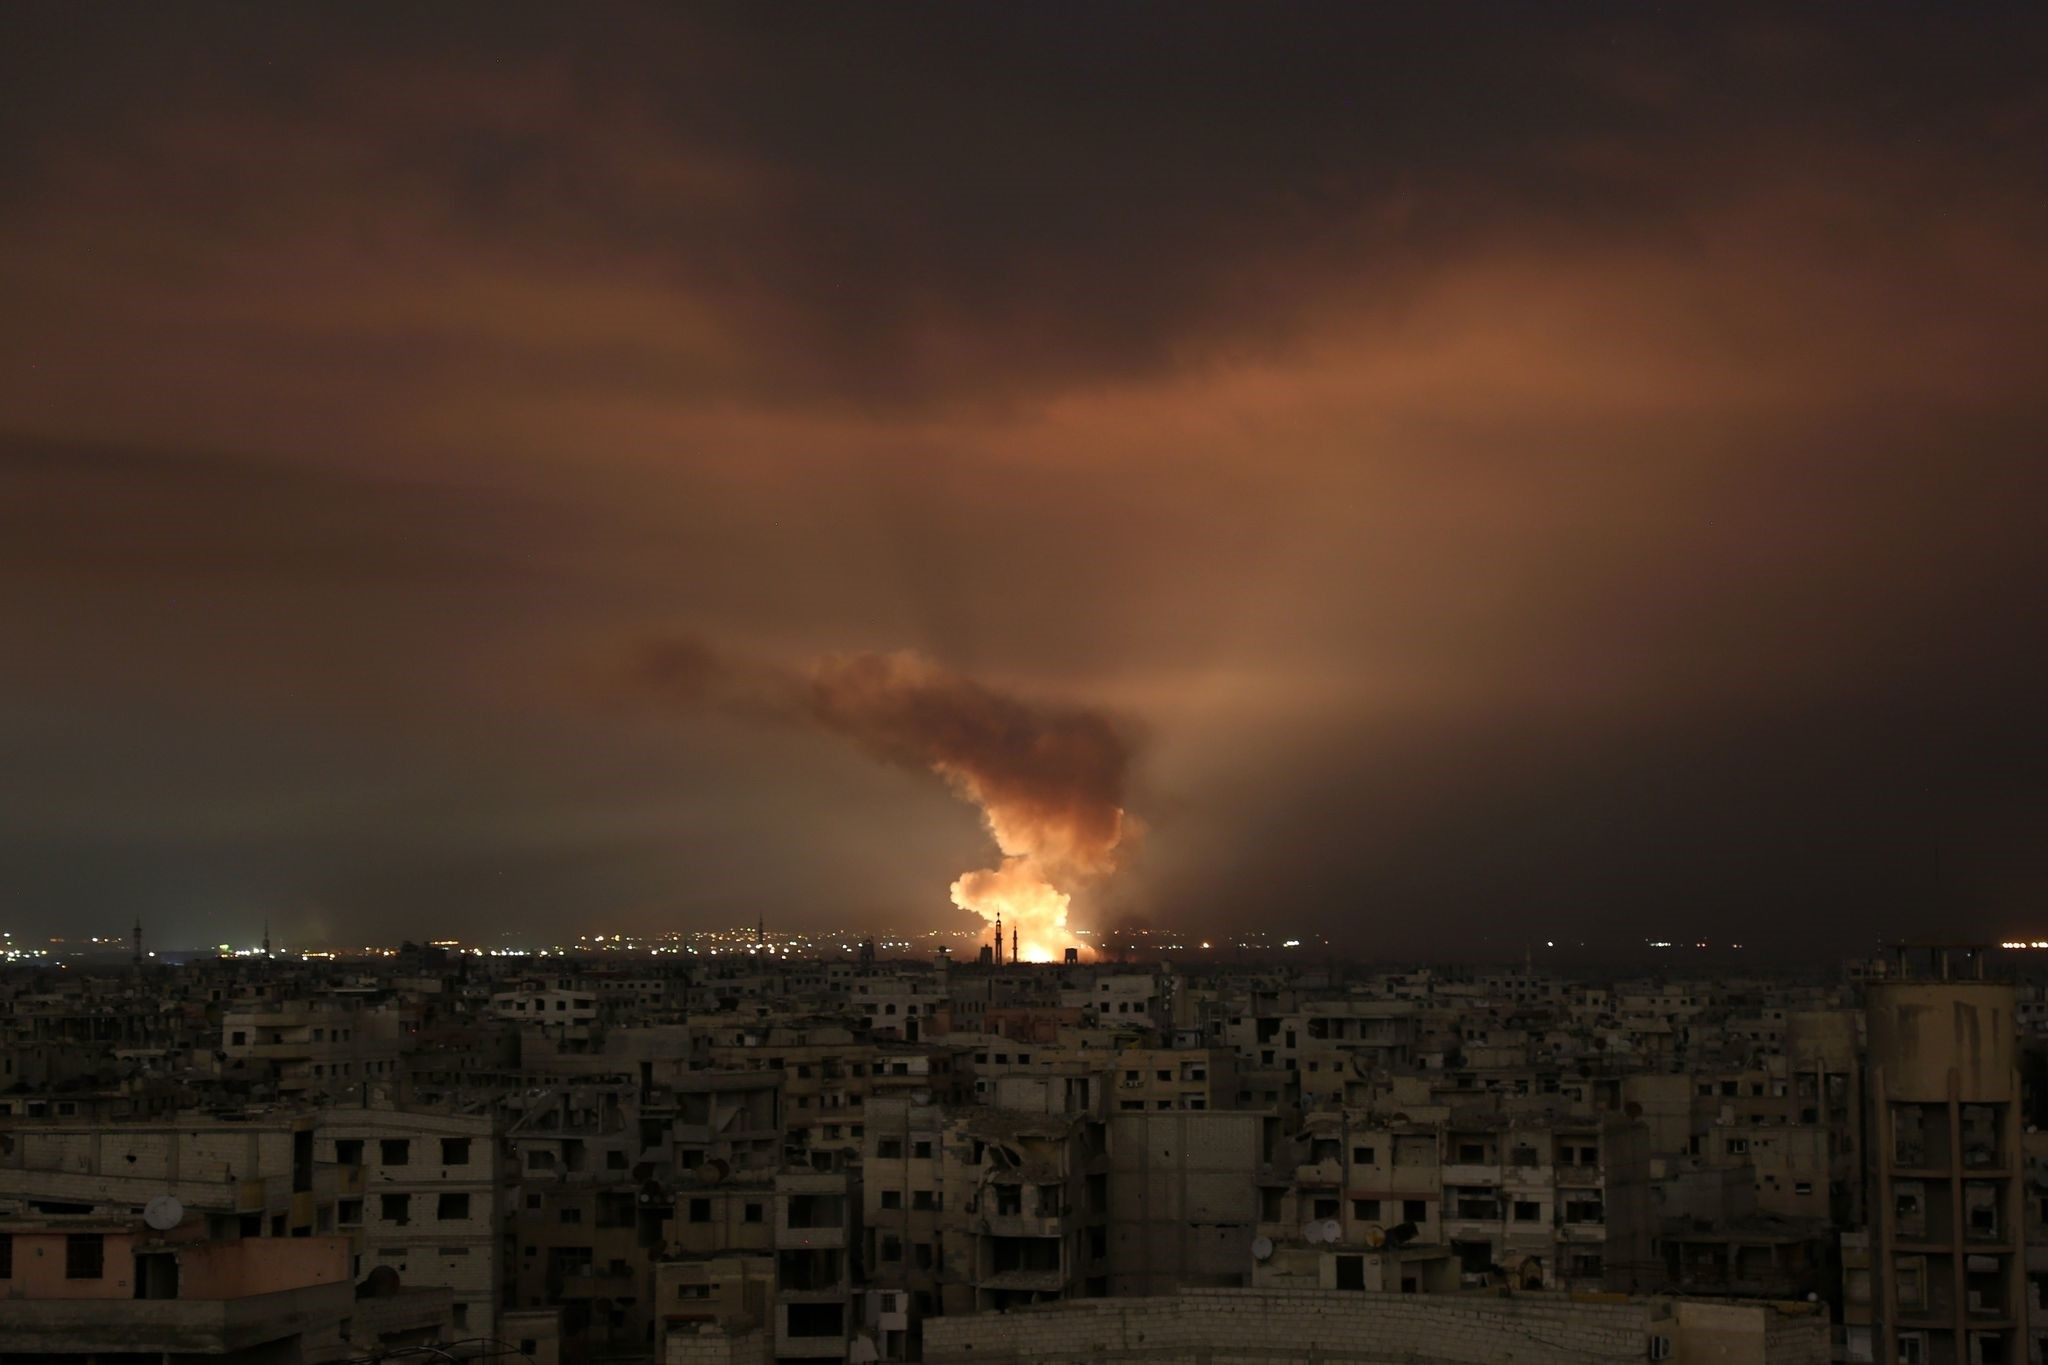 Smoke billows following a regime airstrike on the besieged Eastern Ghouta suburb on the outskirts of Damacus, Syria, Feb. 23.